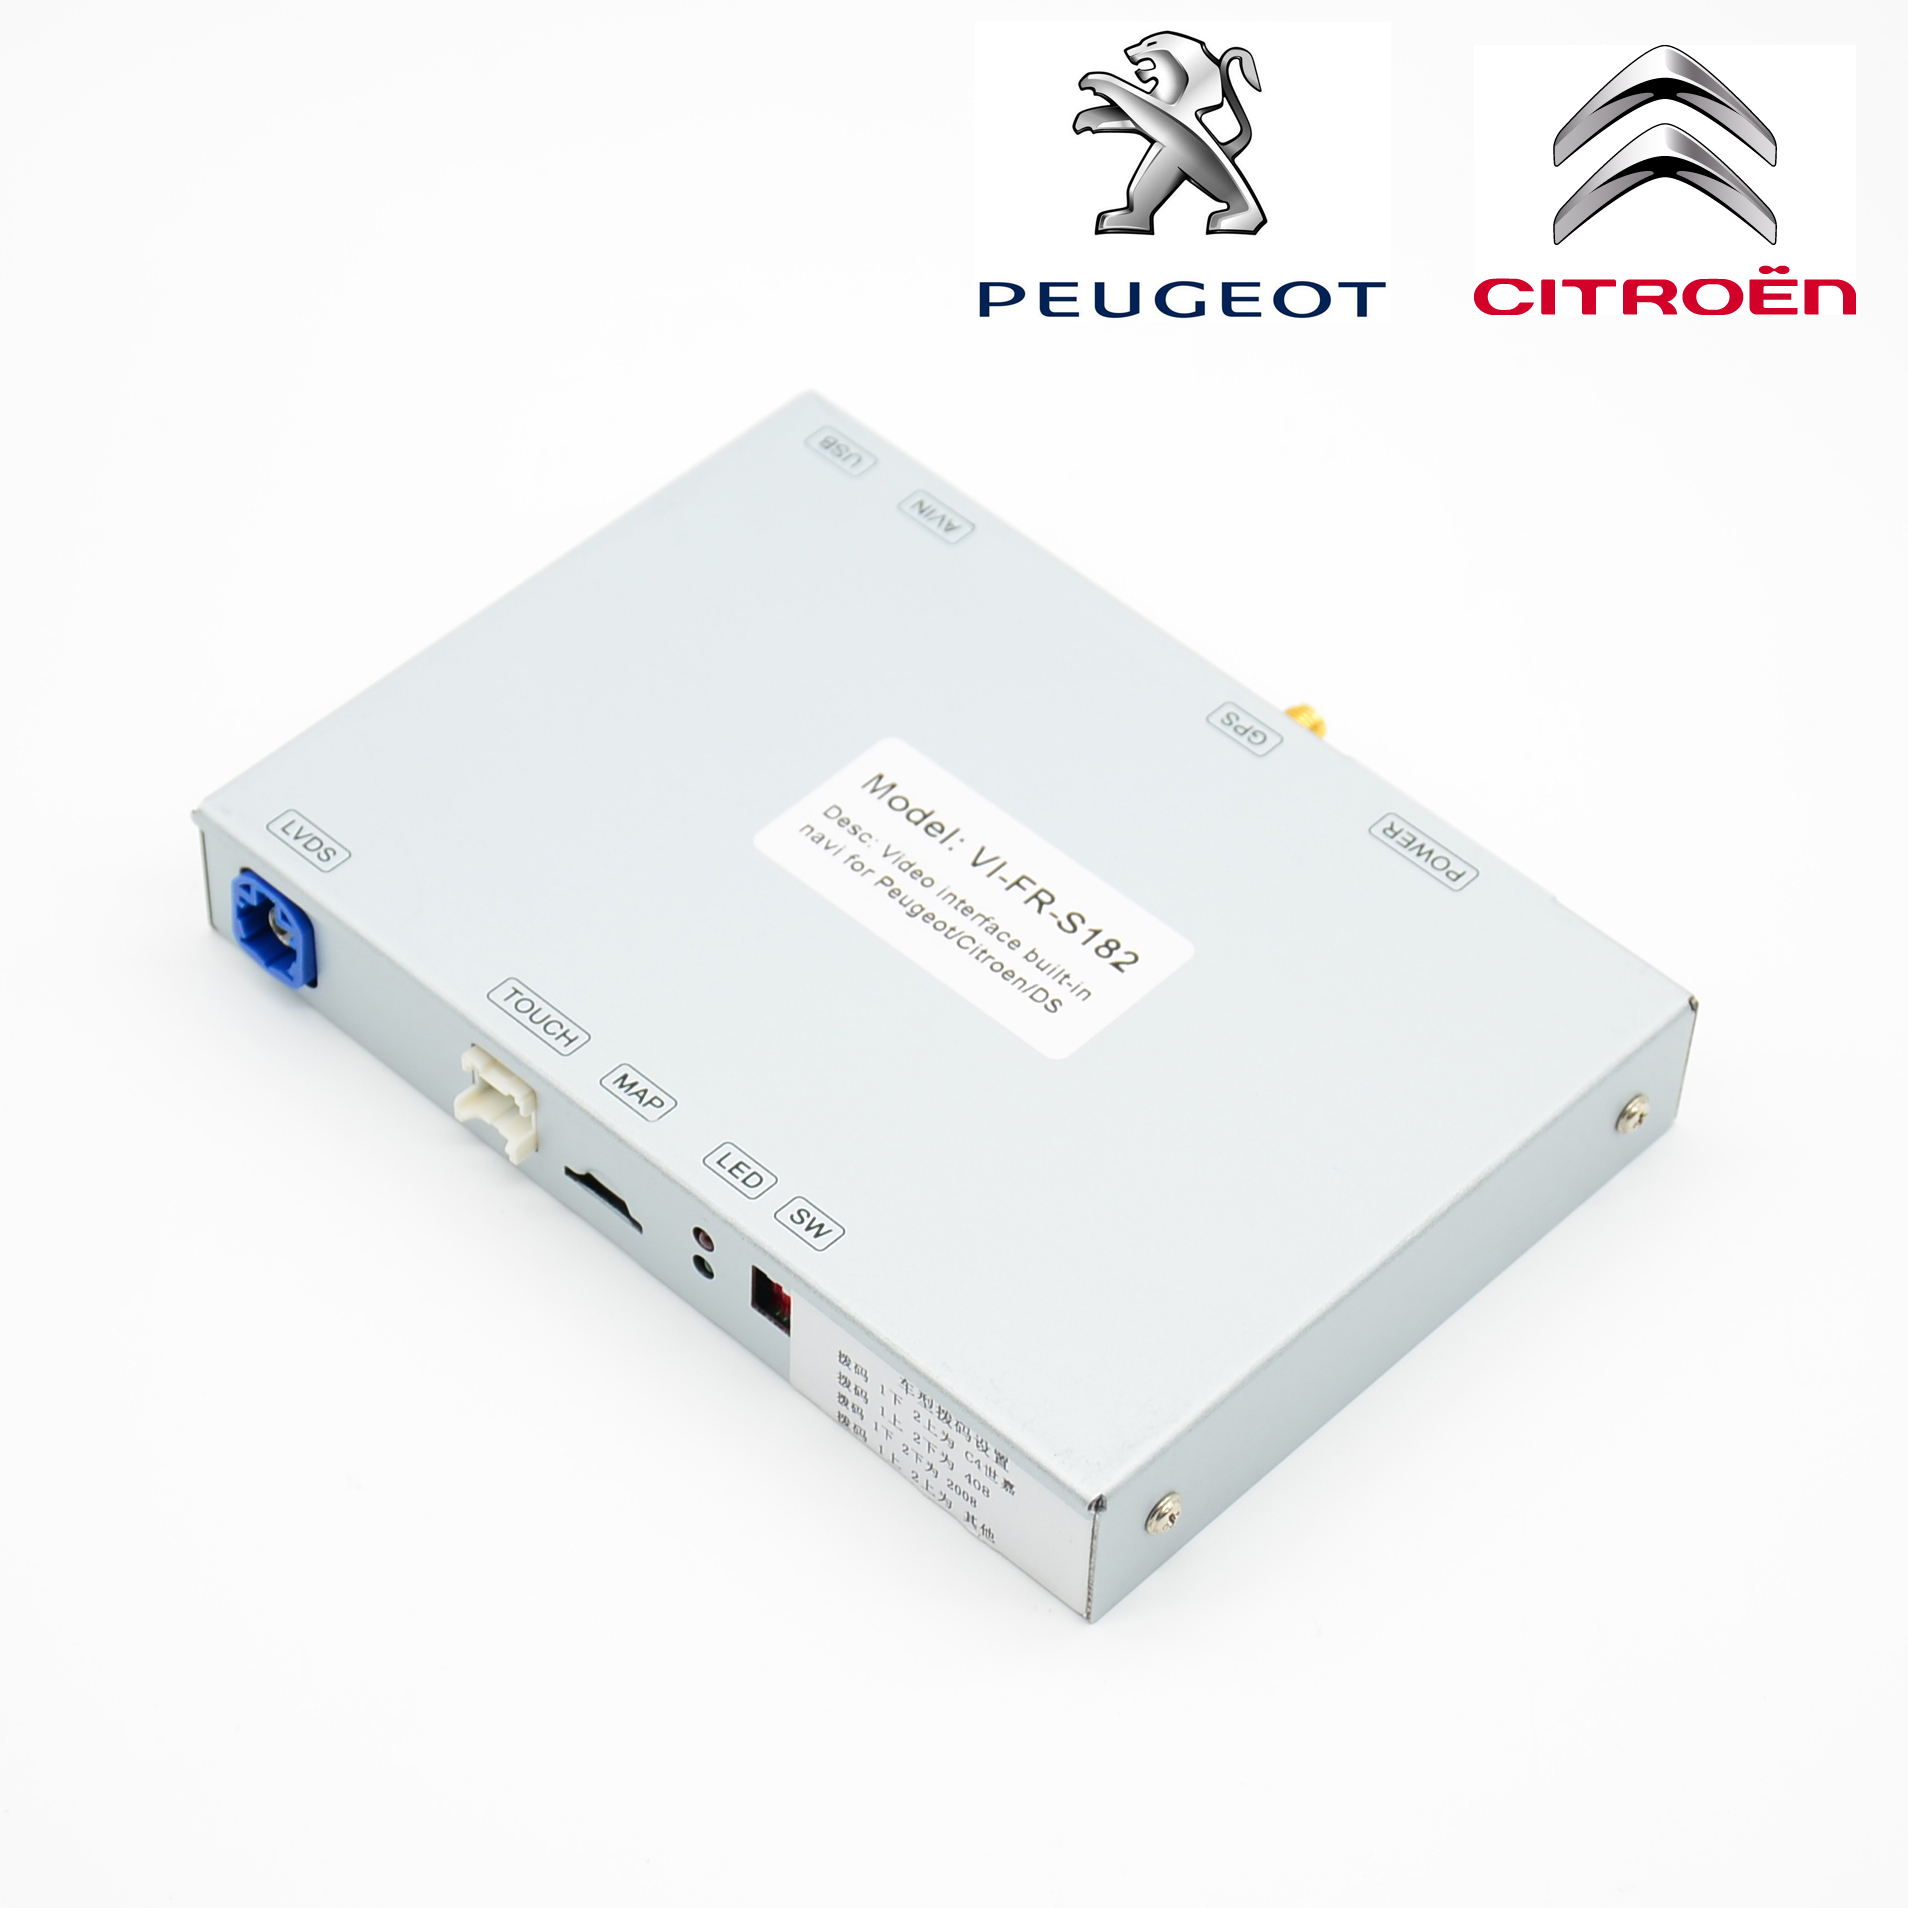 INTERFACE CITROEN PEUGEOT 2016 Навигация за CITROEN и PEUGEOT  2016-2017 година